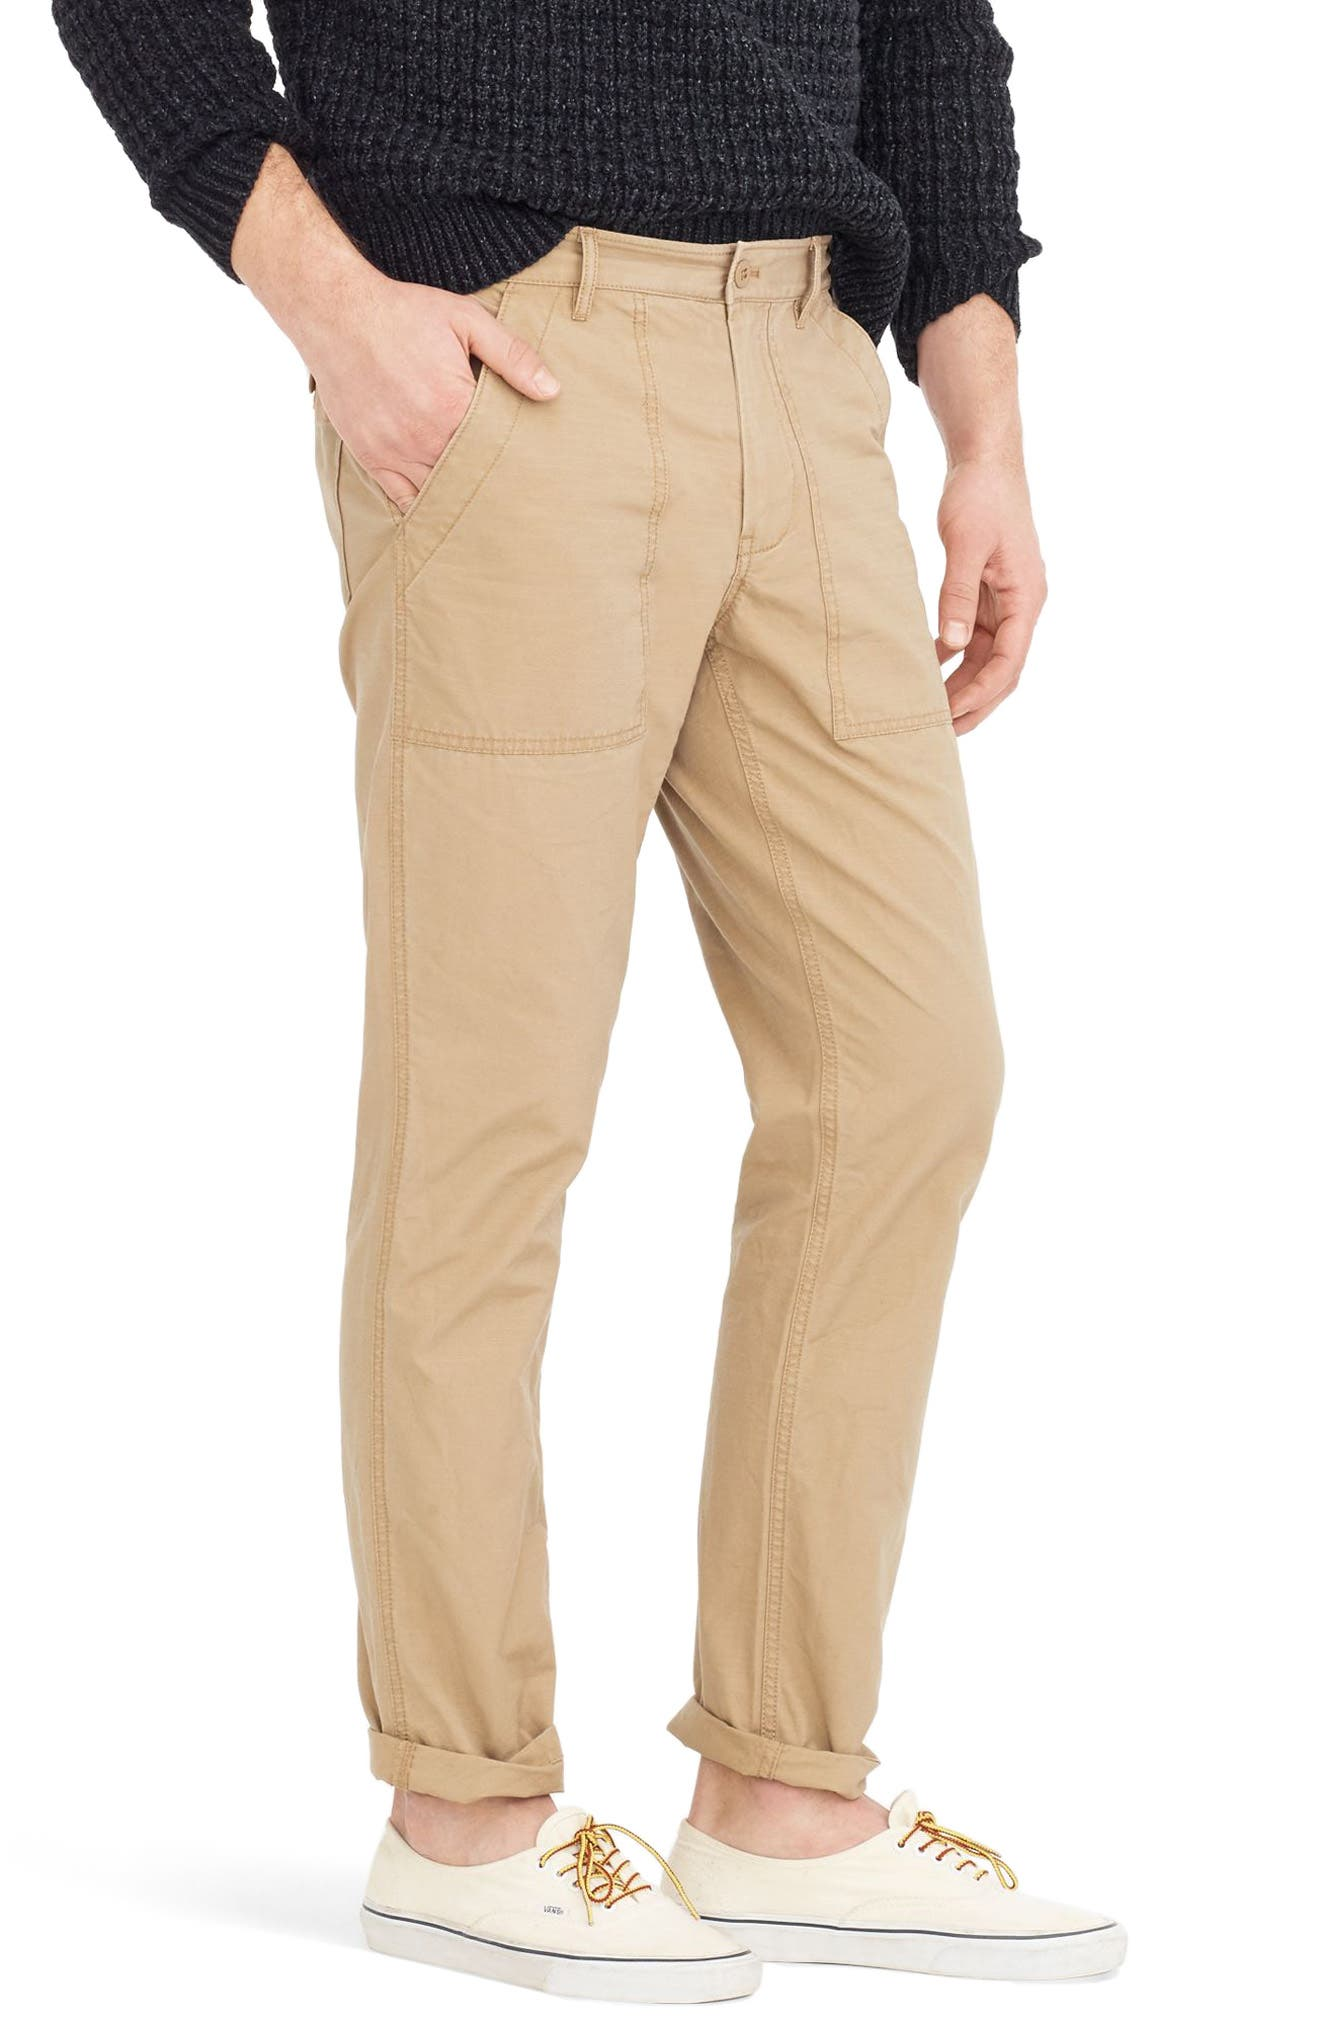 770 Straight Fit Ripstop Camp Pants,                             Alternate thumbnail 3, color,                             250